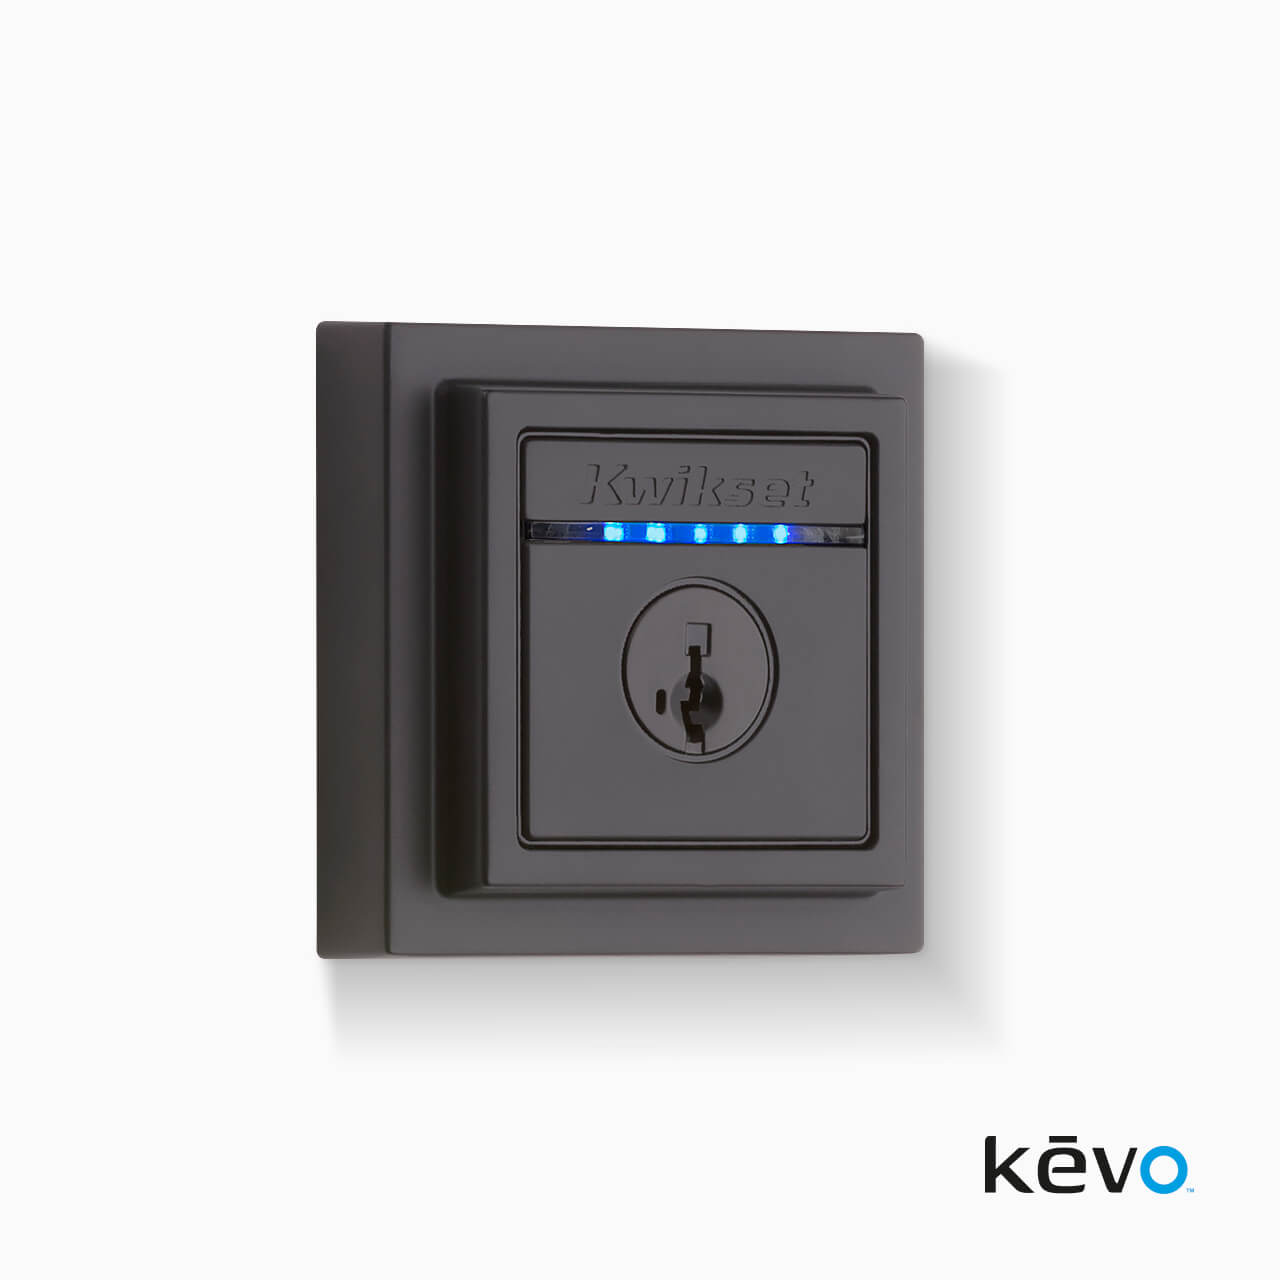 Kevo Contemporary Touch-to-Open Smart Lock